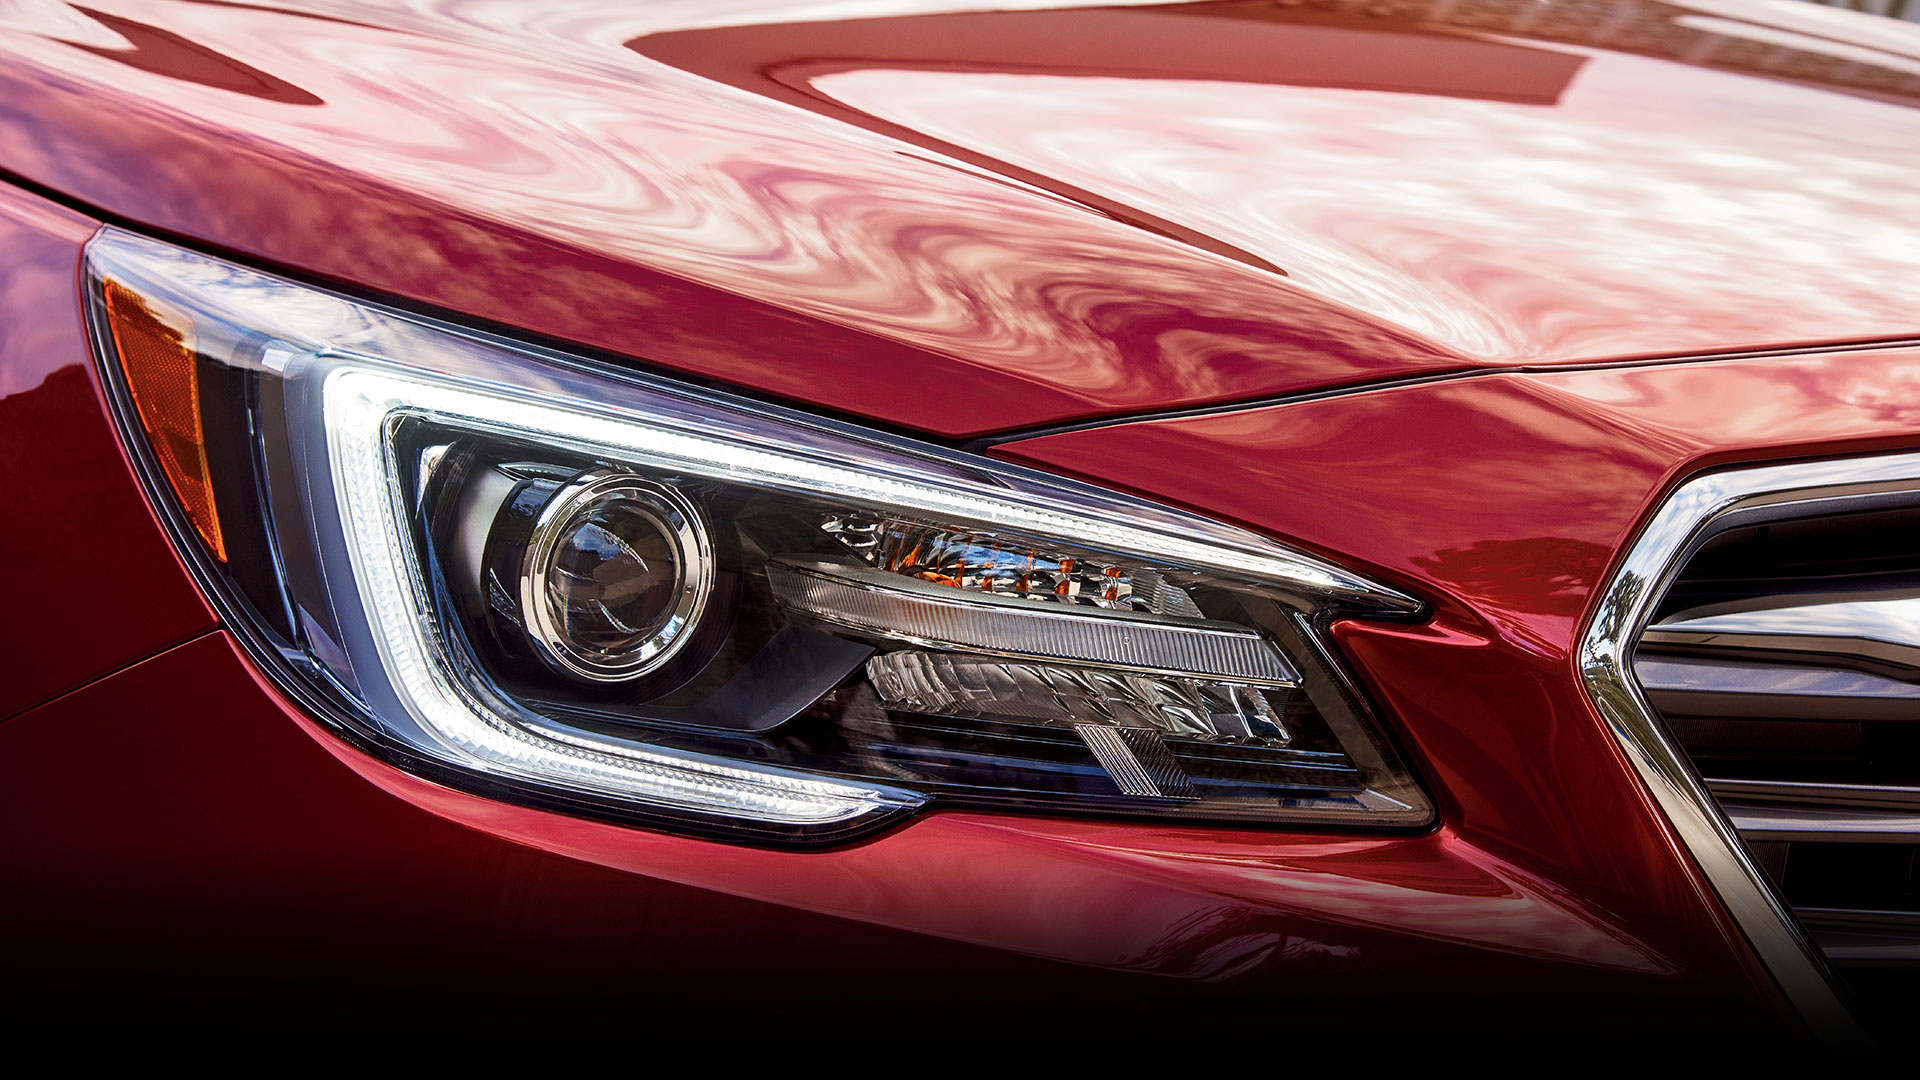 New for 2018, these headlights help give you more visibility around corners. As you steer, they adjust to point in the direction you're turning.